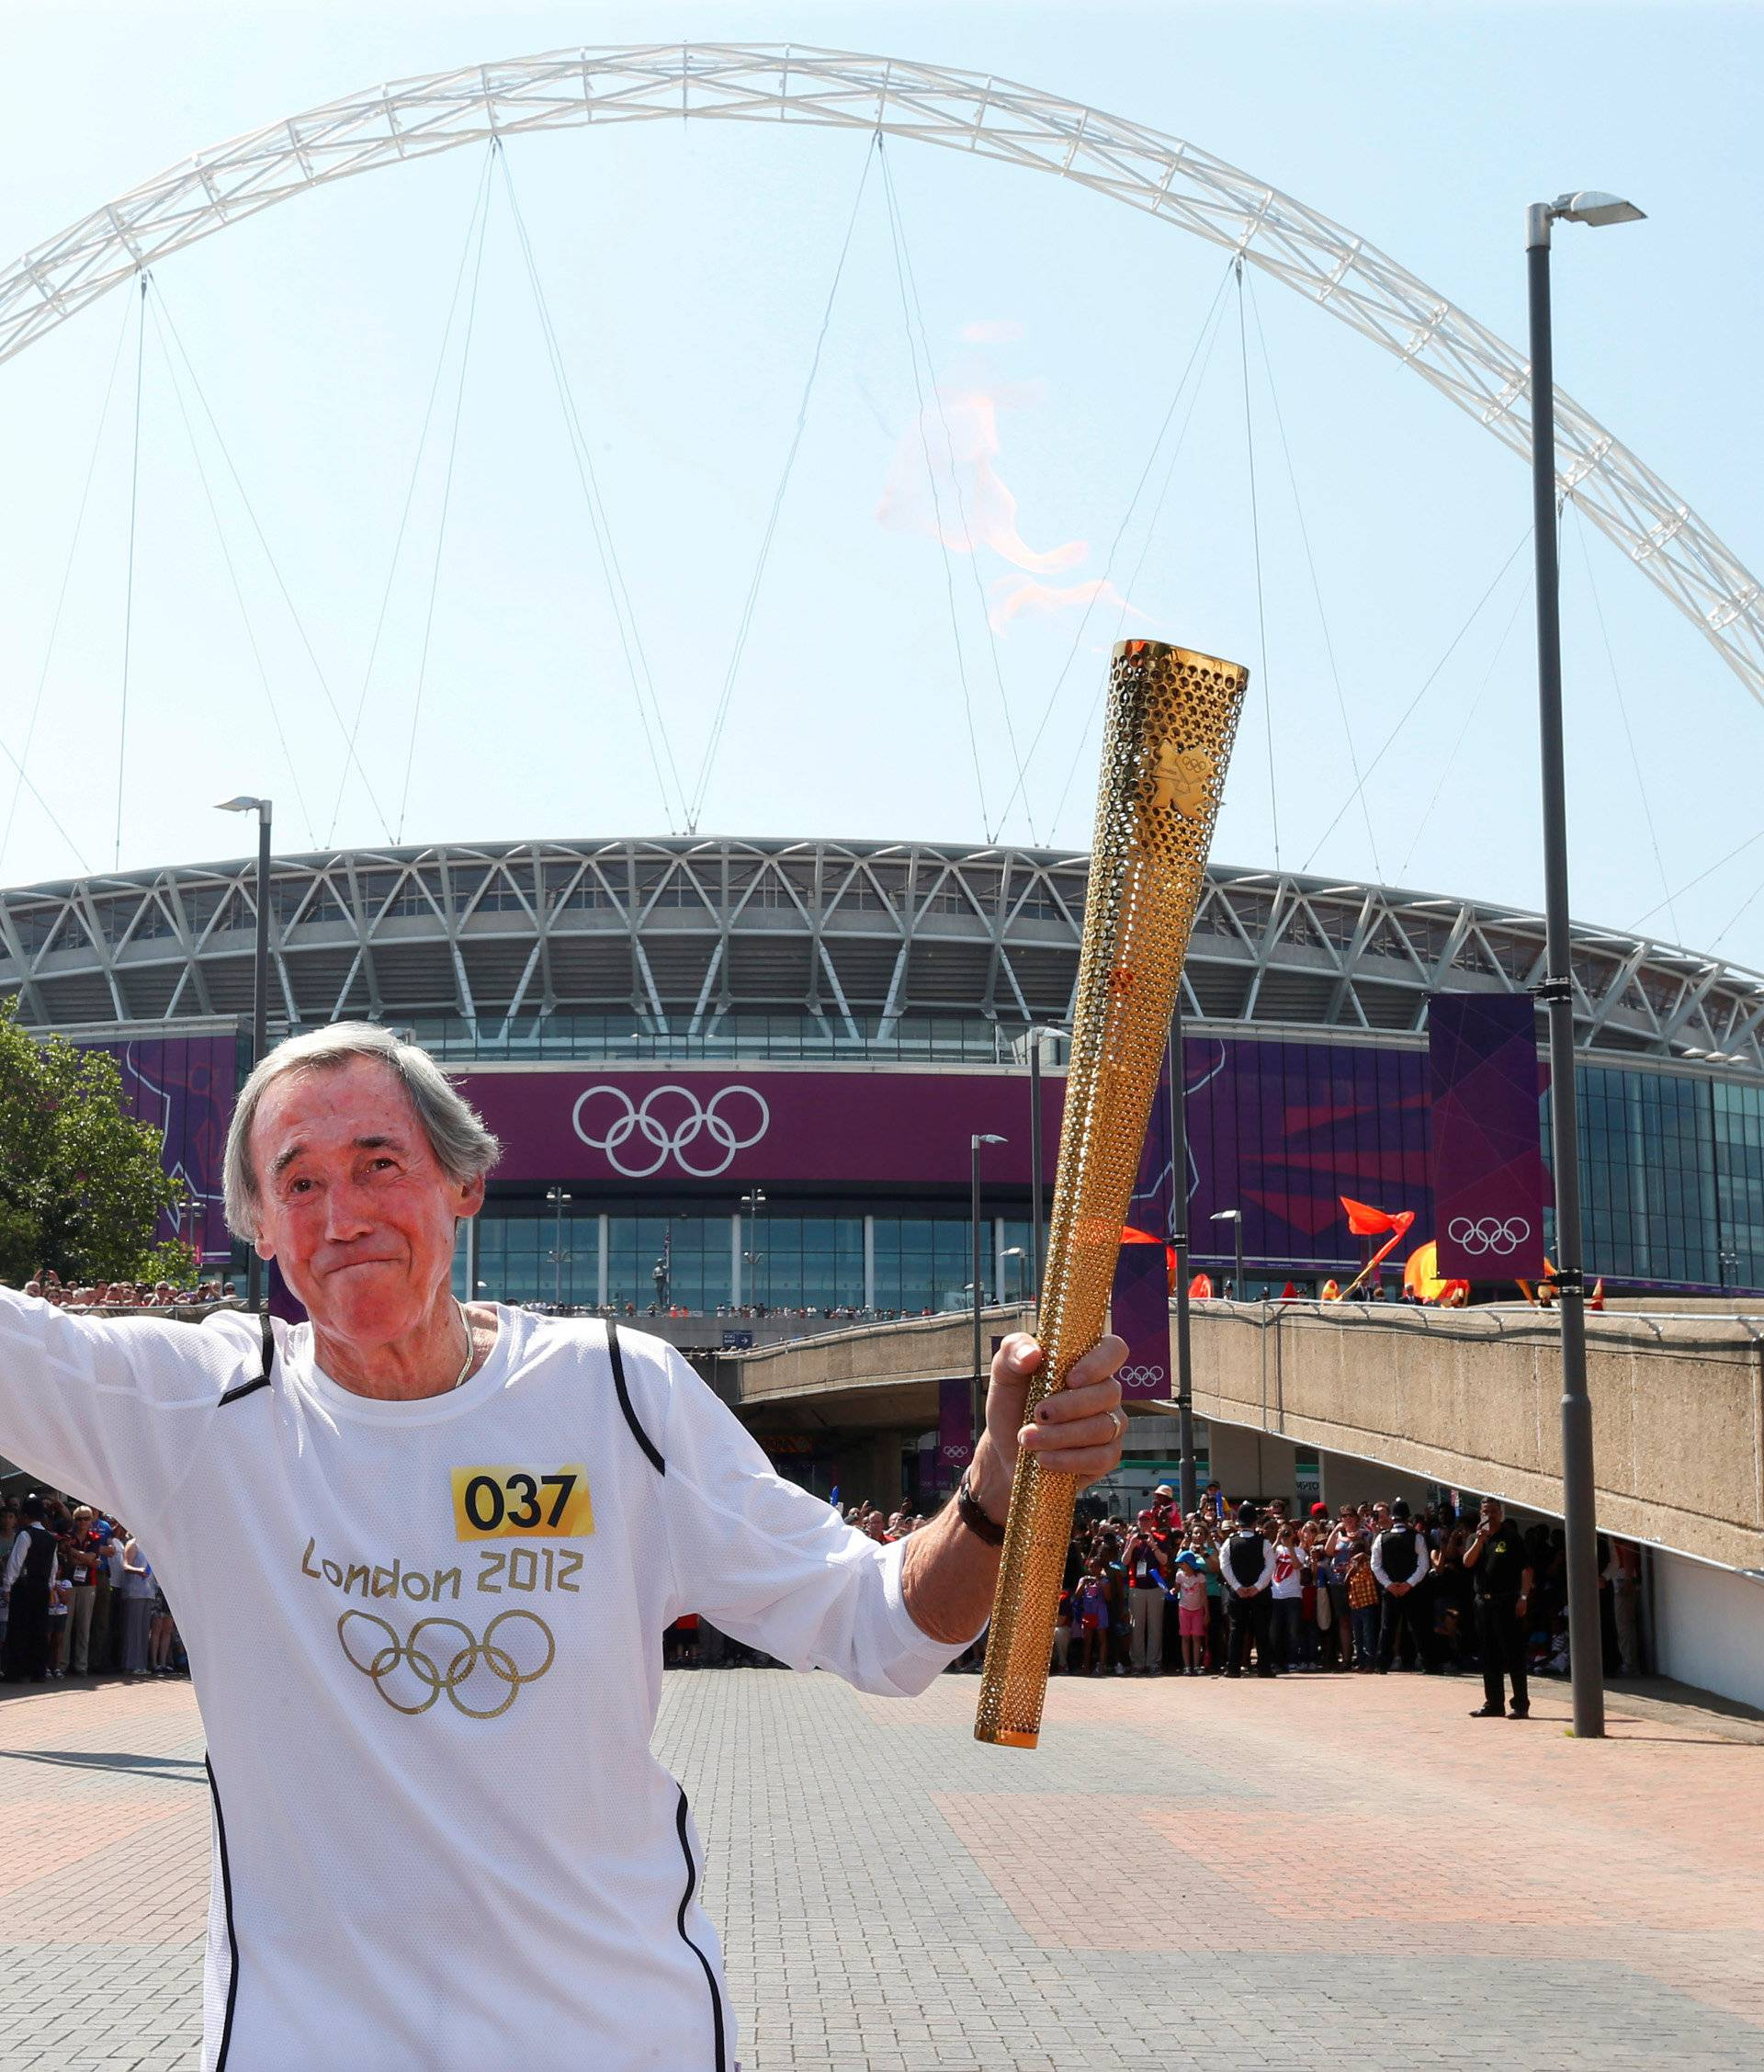 FILE PHOTO: British soccer player Banks runs with the London 2012 Olympic torch outside Wembley Stadium in northwest London